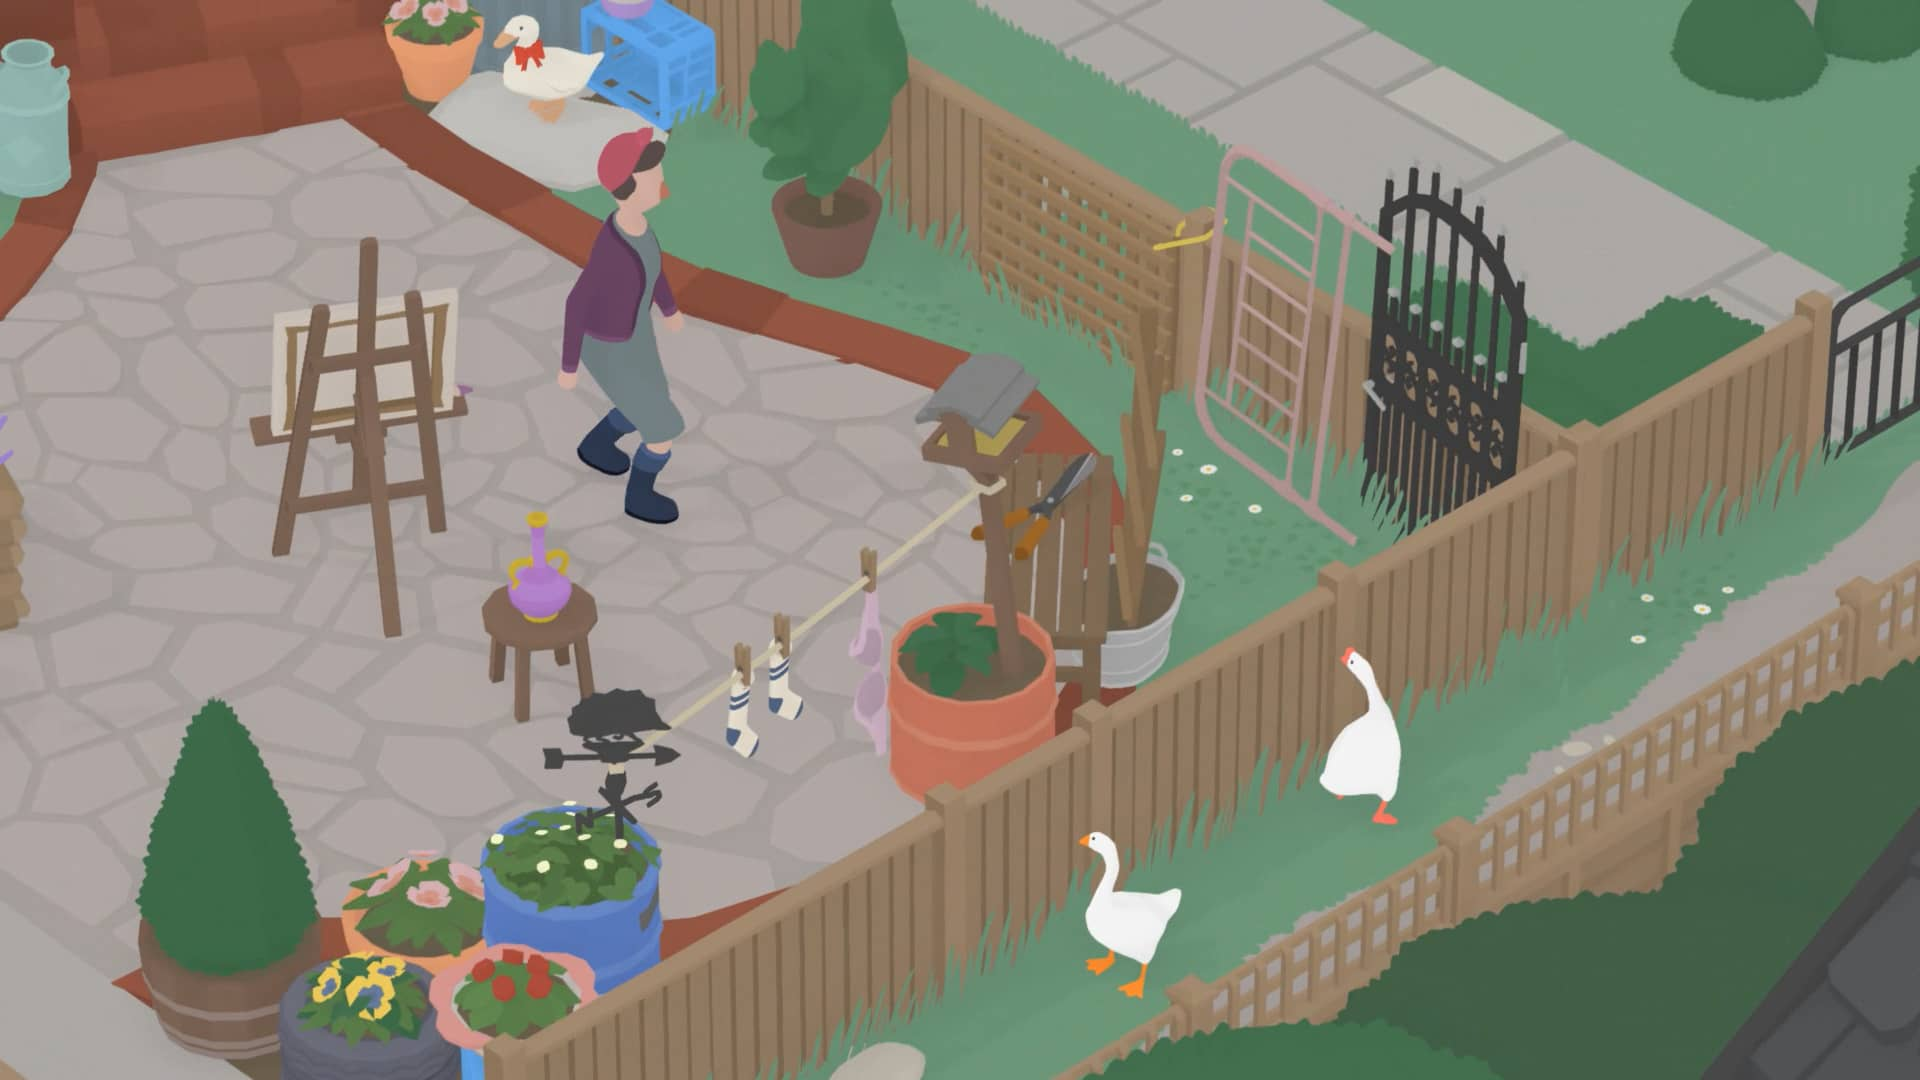 Untitled Goose Game Co-op 2